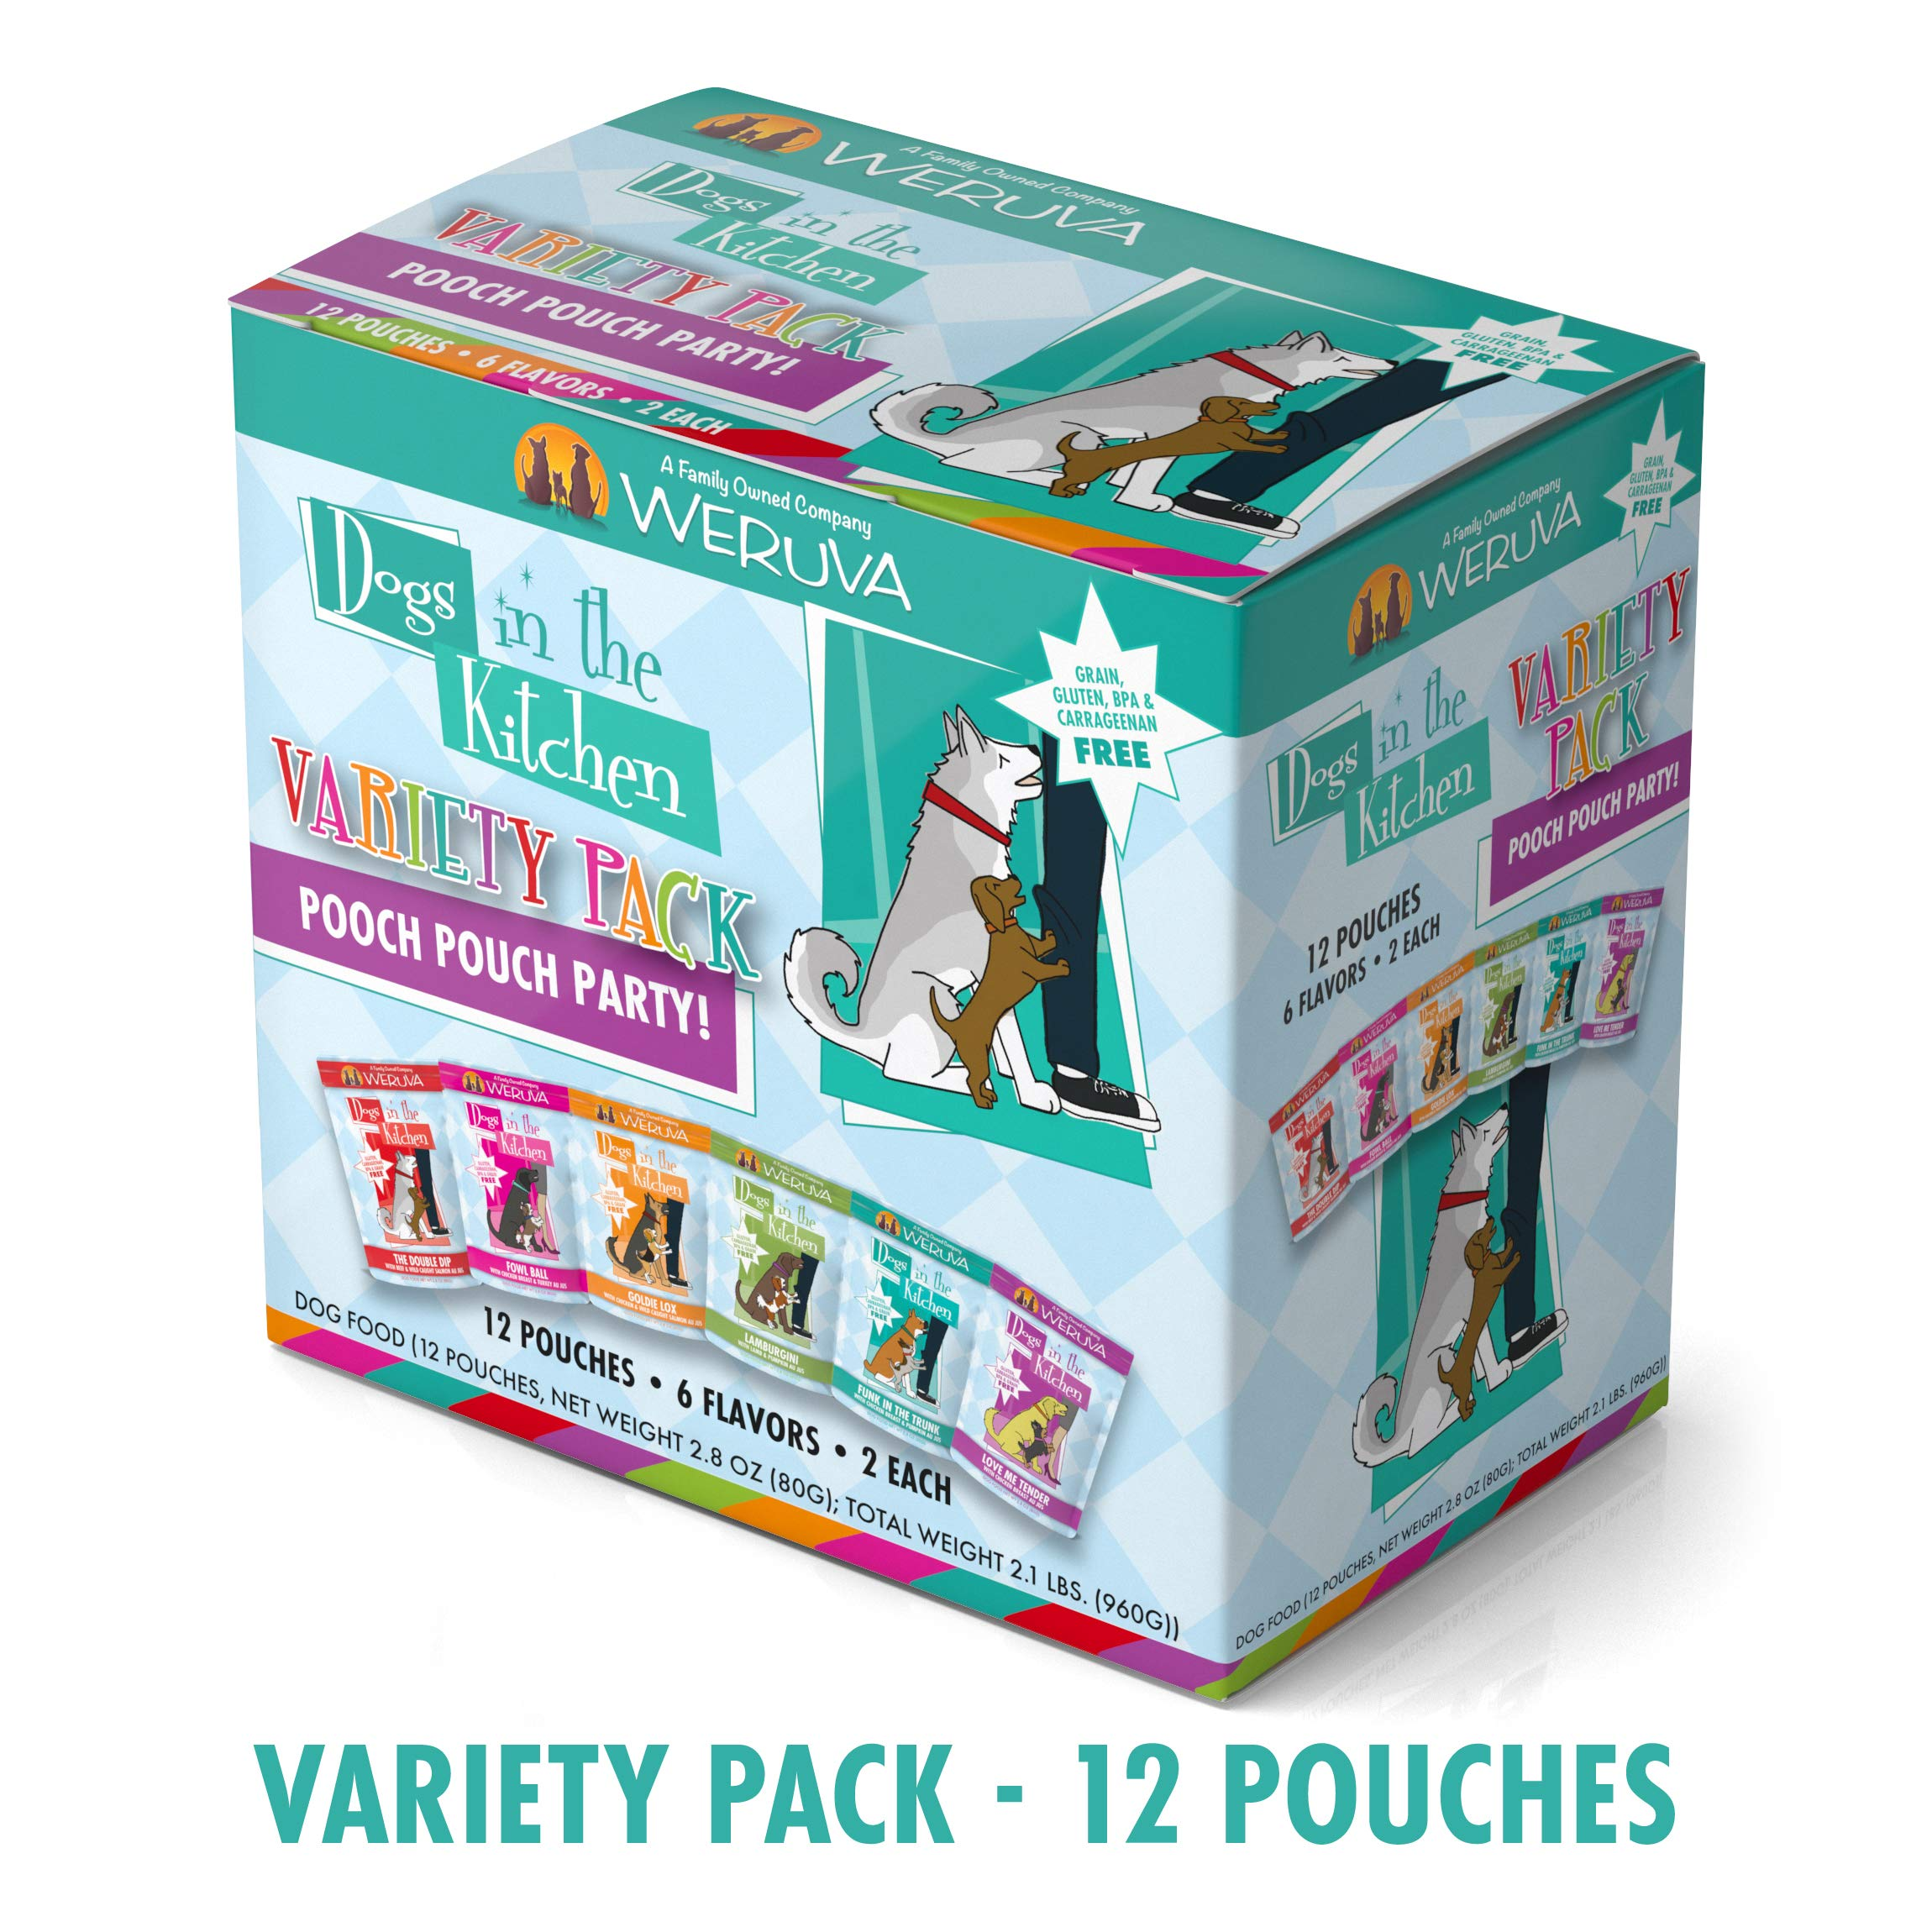 Weruva Dogs In The Kitchen, Variety Pack, Pooch Pouch Party!, Wet Dog Food, 2.8Oz Pouches (Pack Of 12) by Weruva